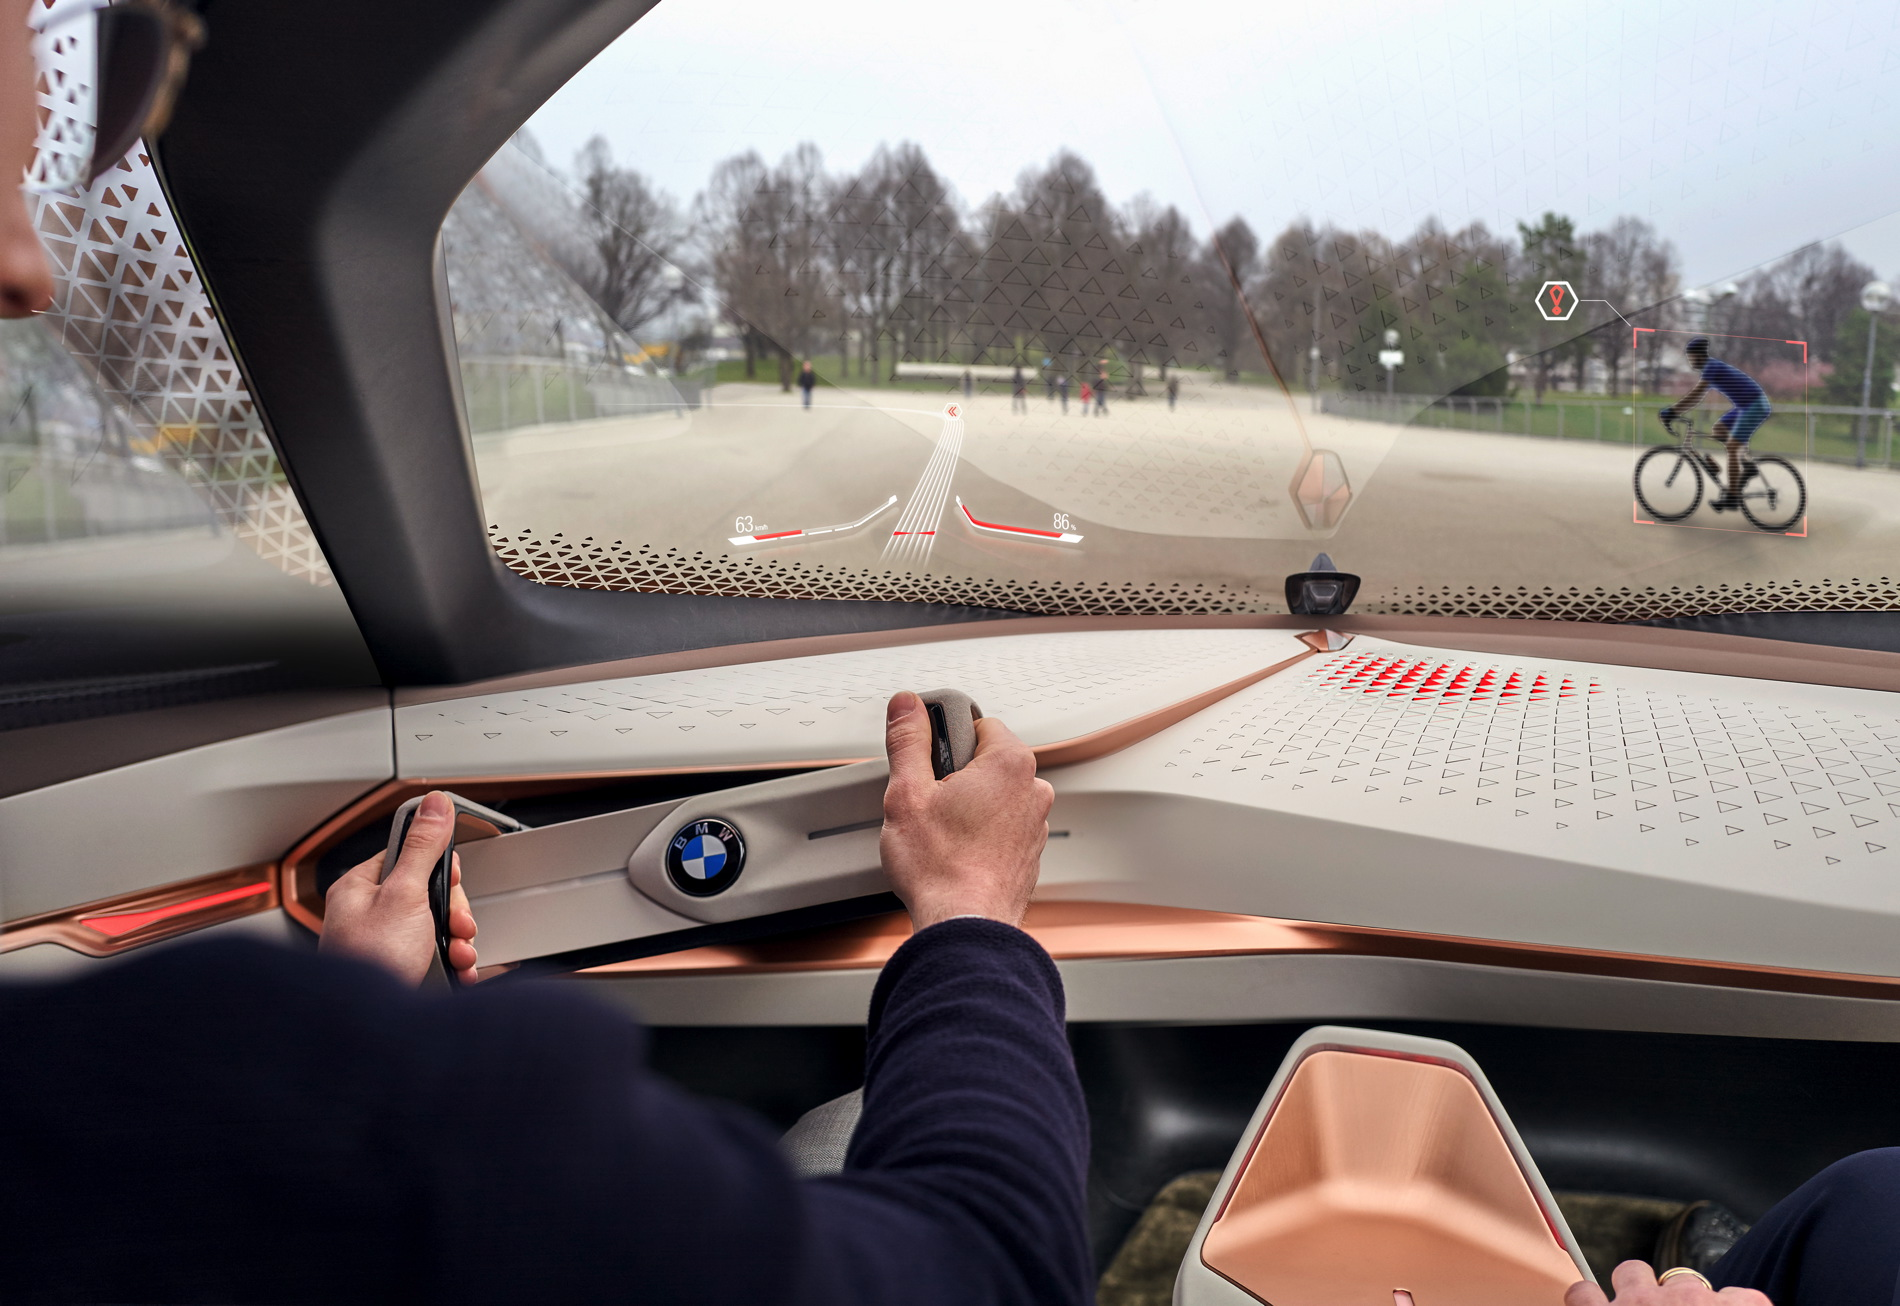 BMW Vision Next 100 images 136